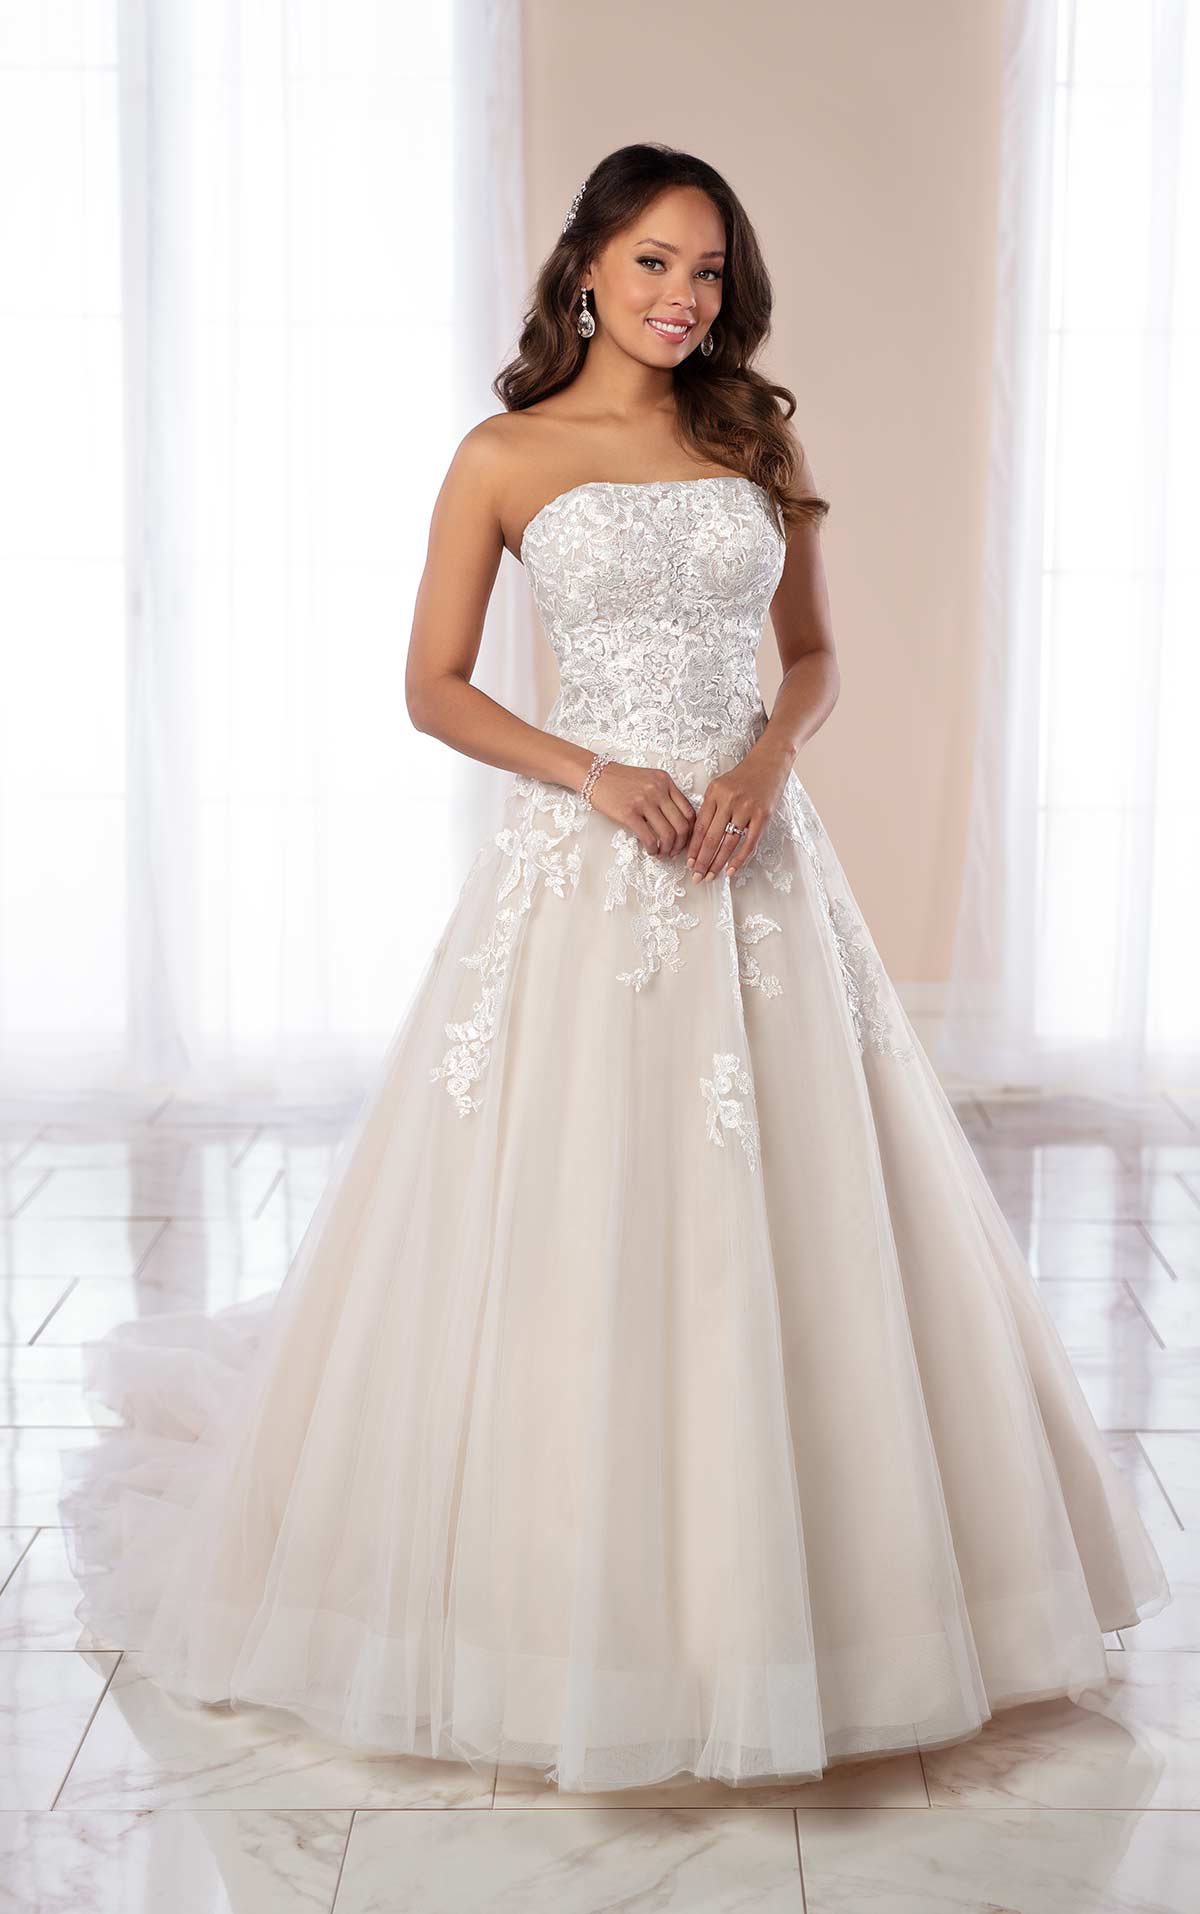 Strapless Ballgown with Floral Lace Detail By Stella York